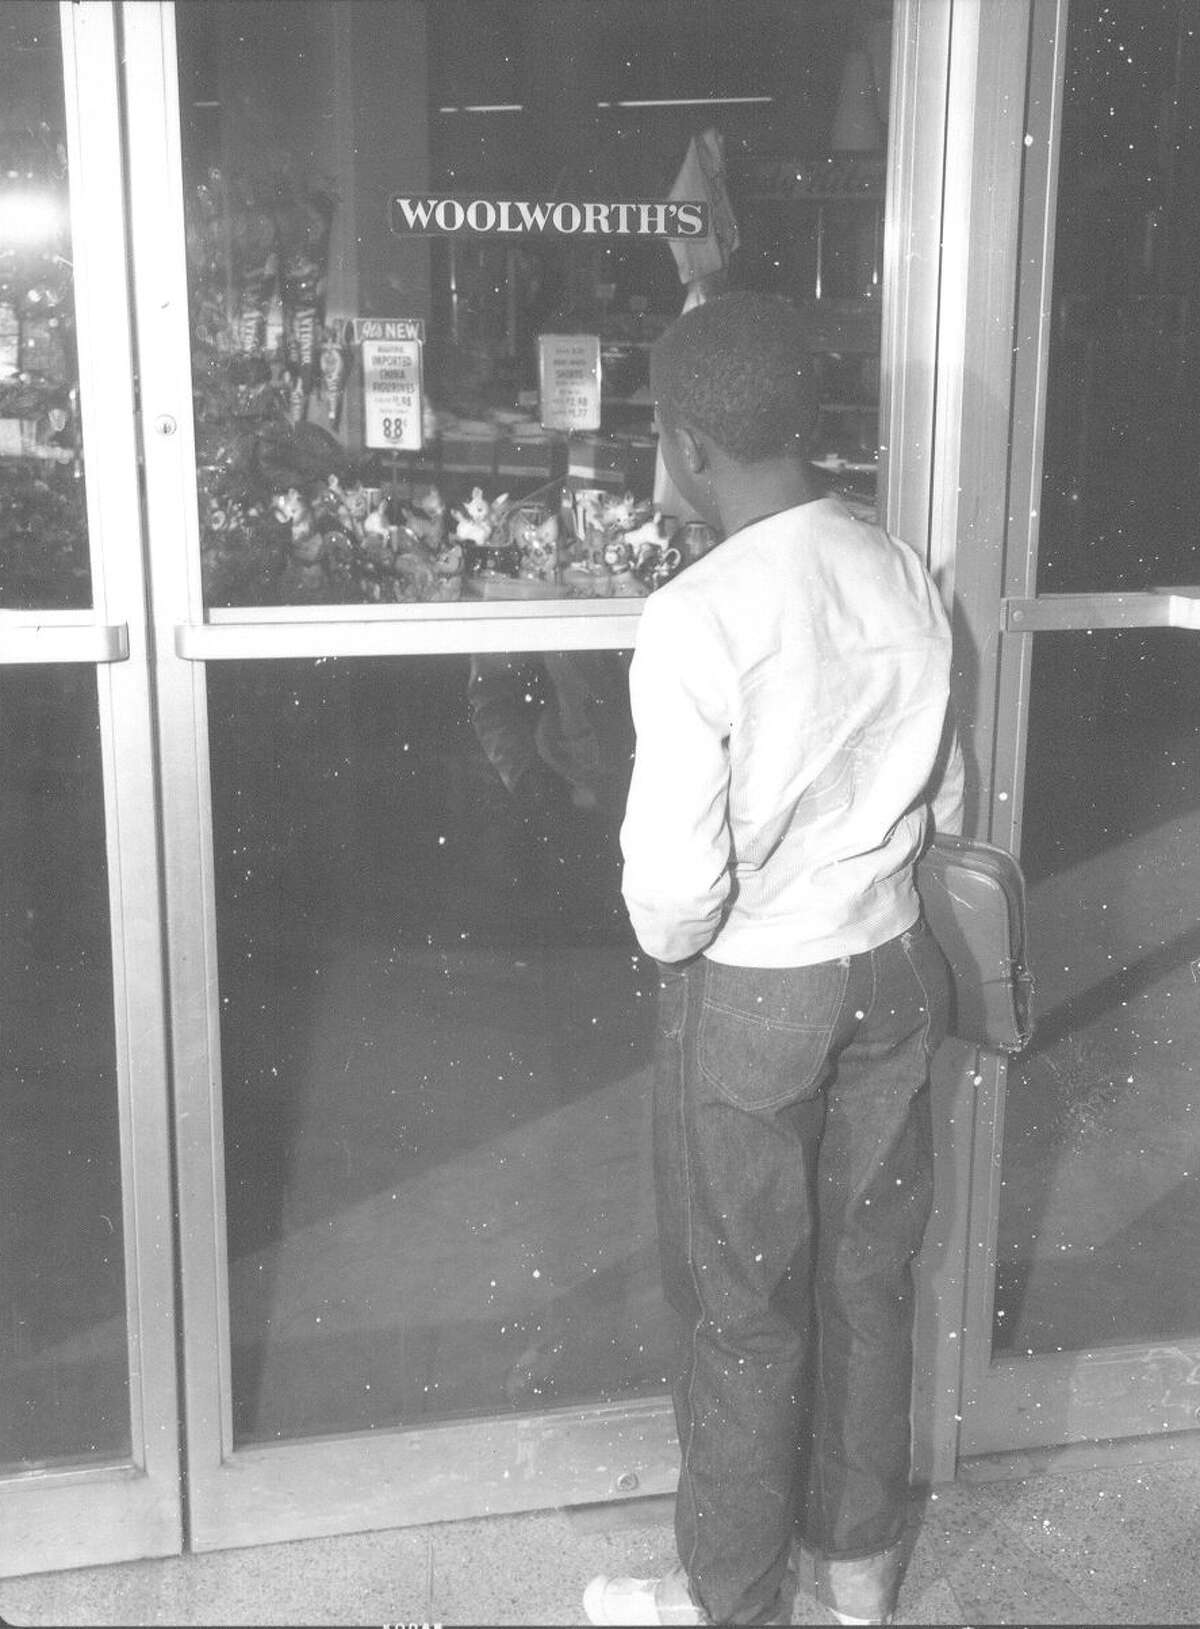 Man waits outside F.W. Woolworth's. Integration of Lunch counter on March 16, 1960. Credit: UTSA Libraries Special Collections